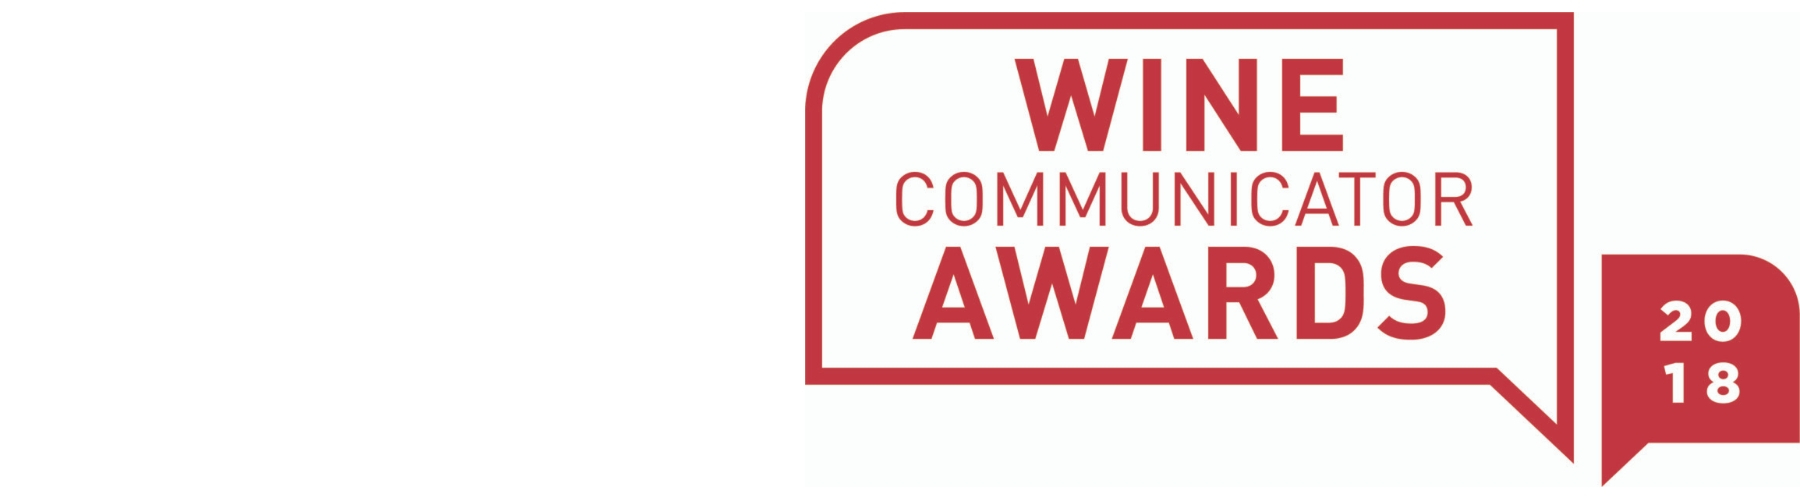 2018 DIGITAL WINE COMMUNICATOR OF THE YEAR